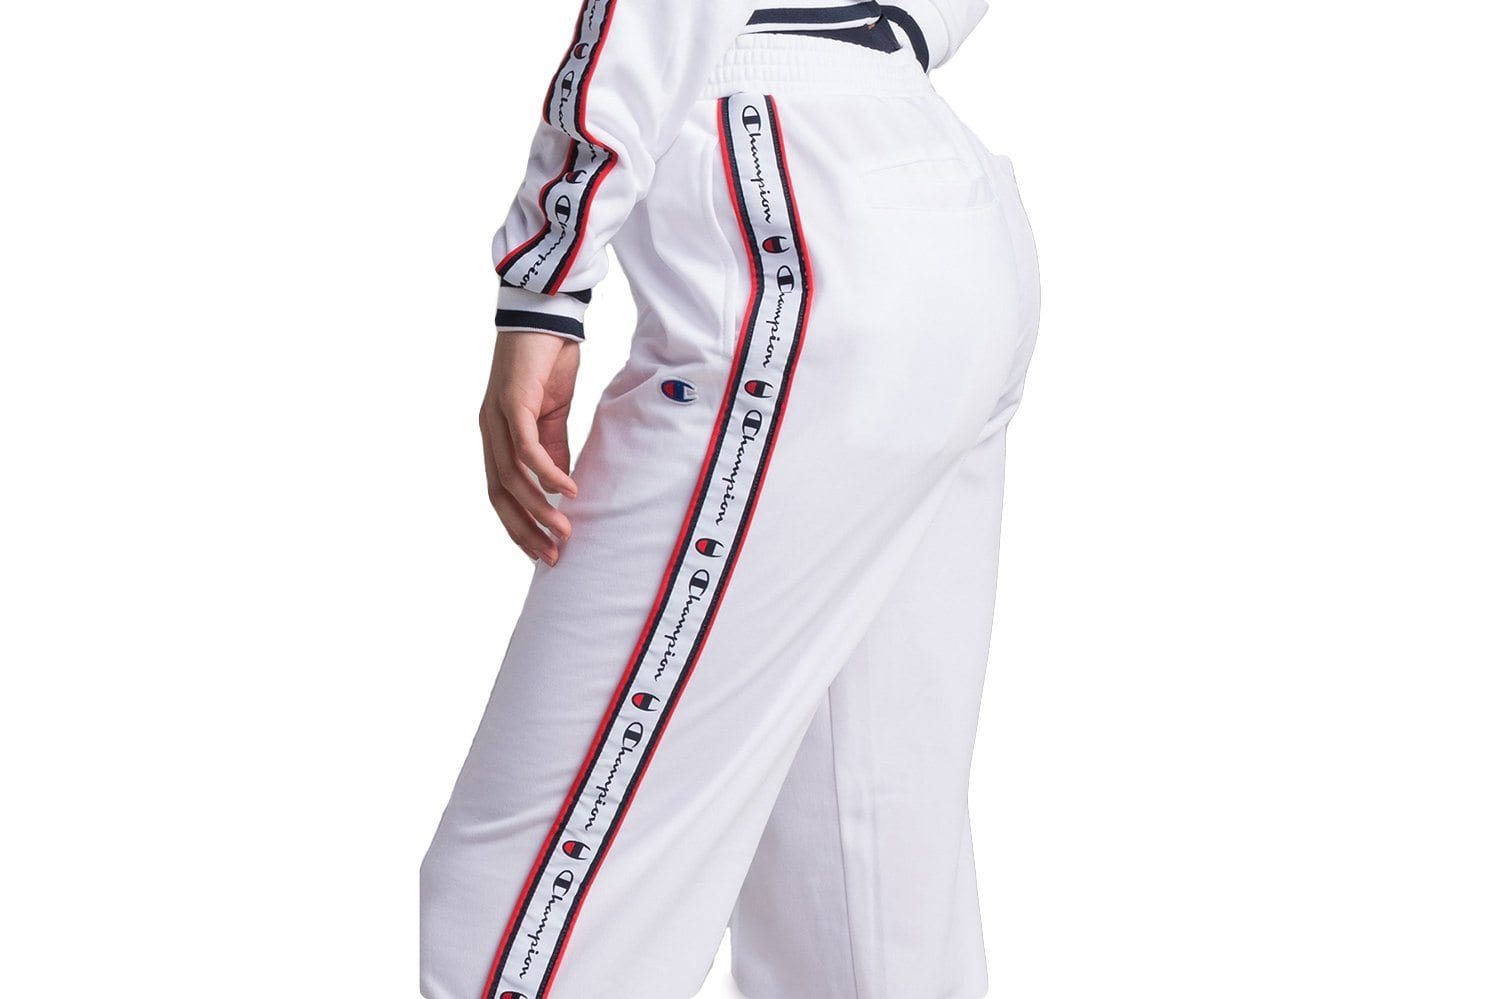 WMNS TRACK PANTS-ML819 WOMENS SOFTGOODS CHAMPION